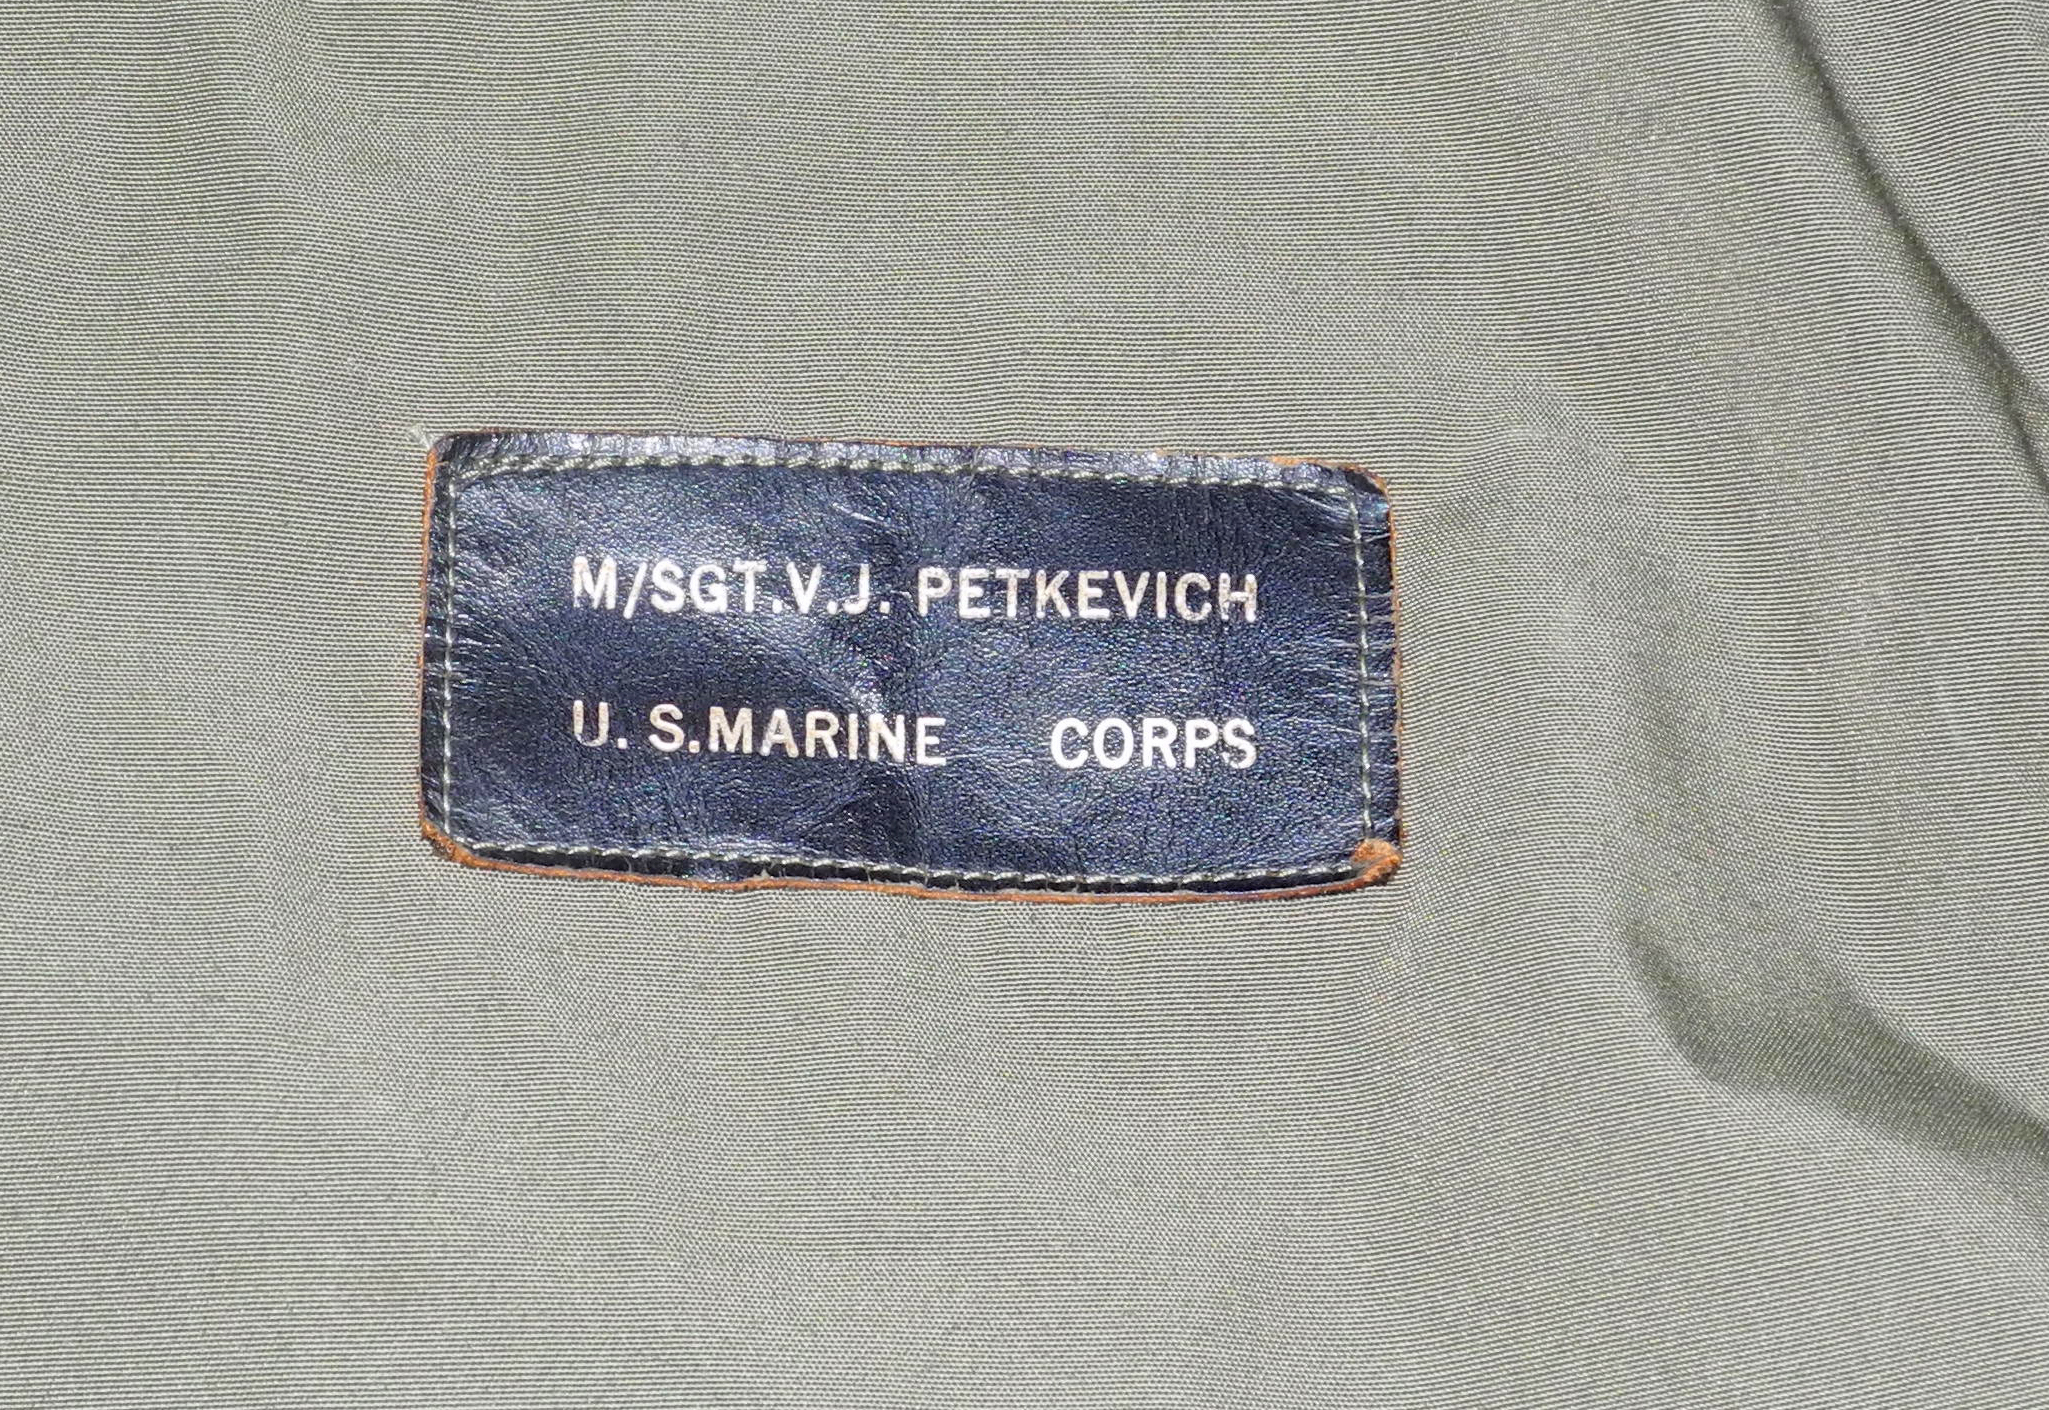 USMC Uniform / Flight Suit bag